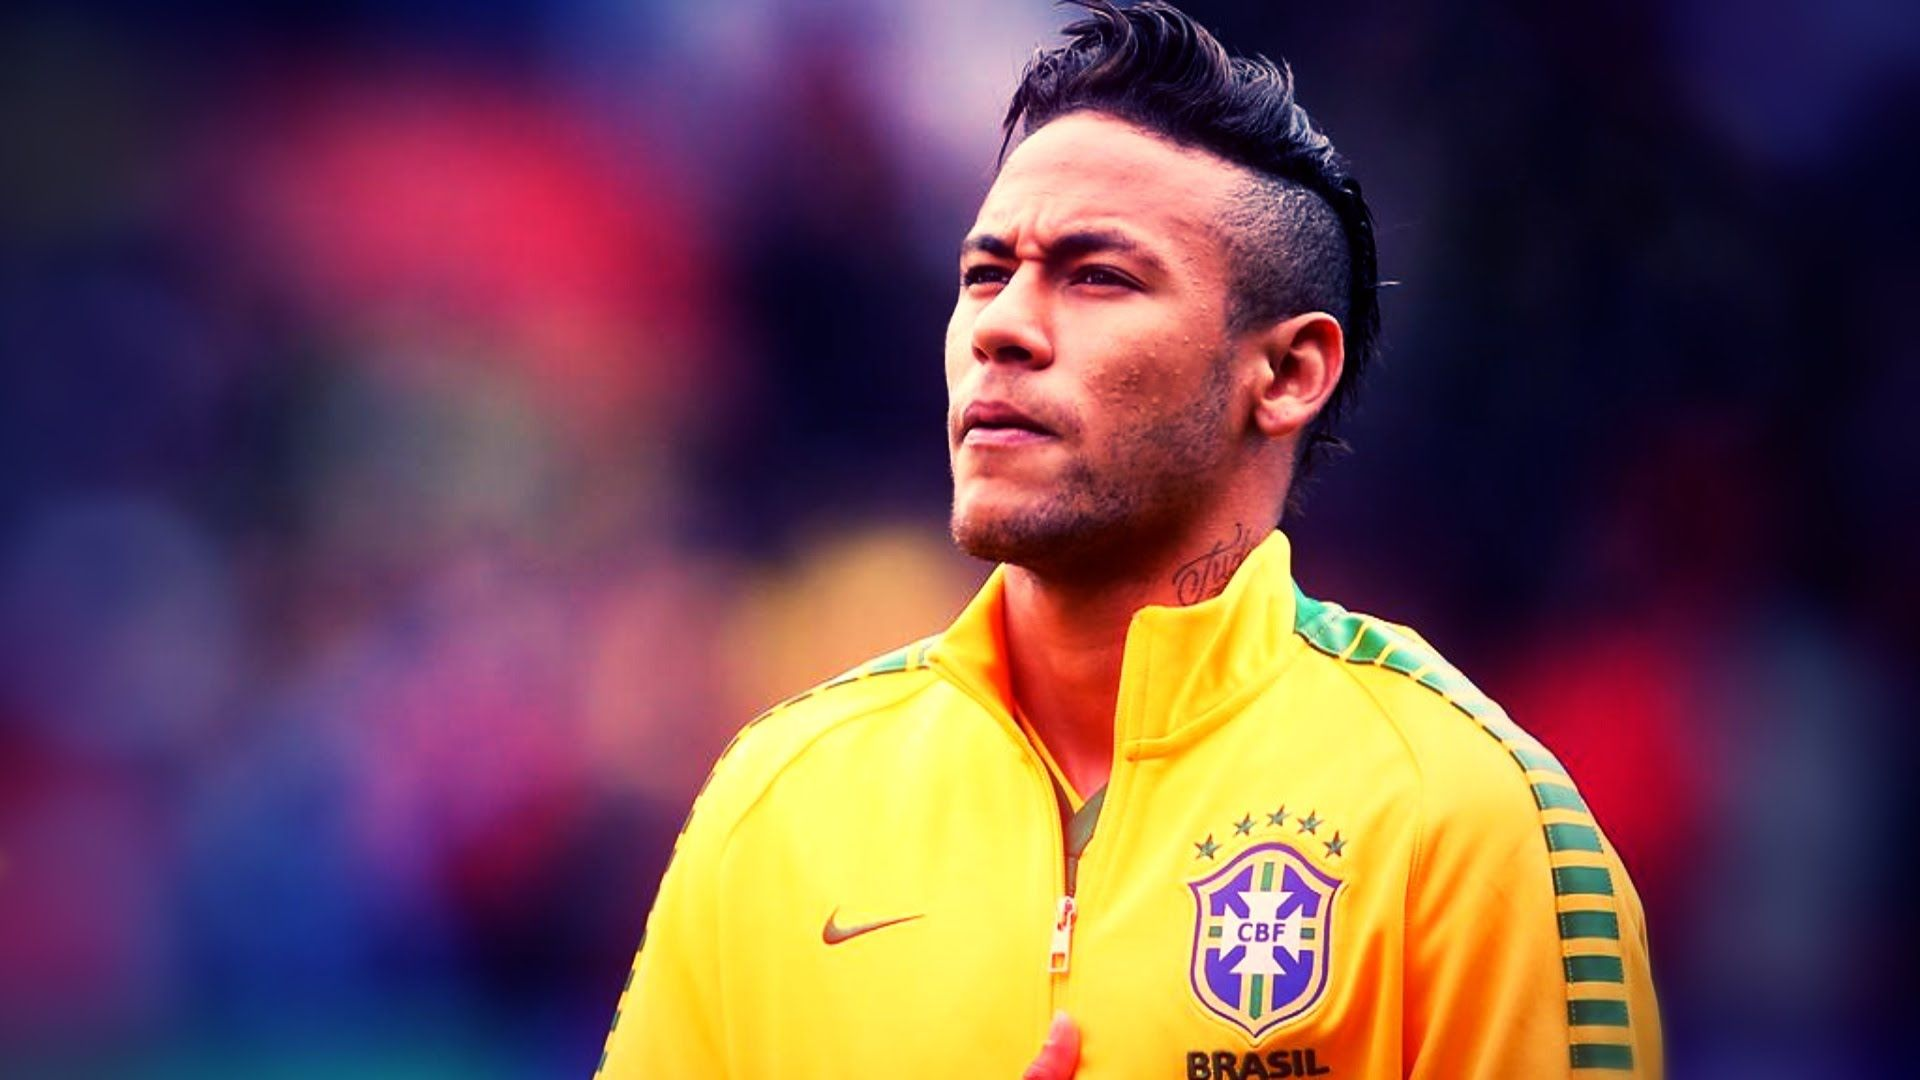 neymar jr football soccer player free hd best photo mobile desktop bakground download wallpaper photos